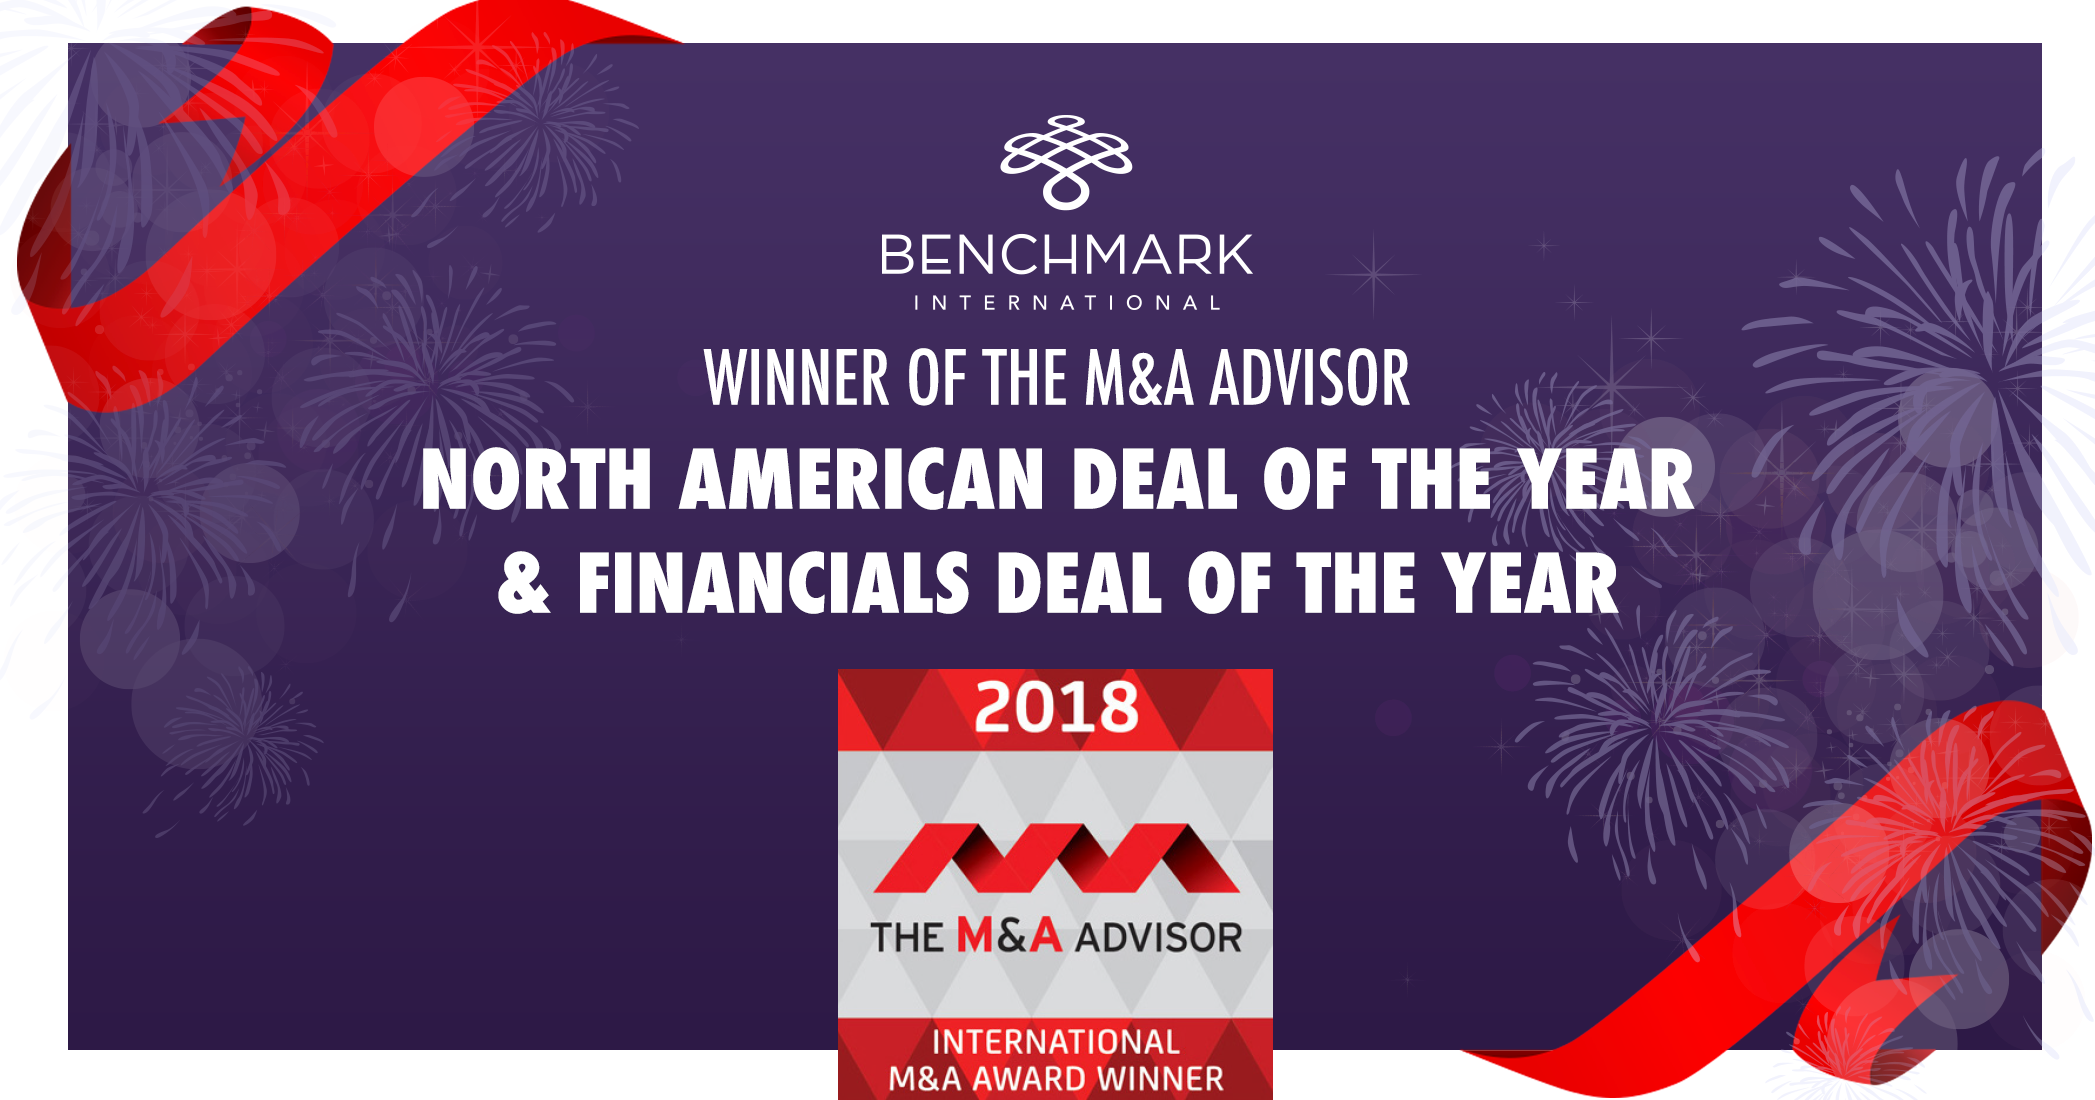 Benchmark Wins North American Deal of the Year and Financials Deal of the Year!